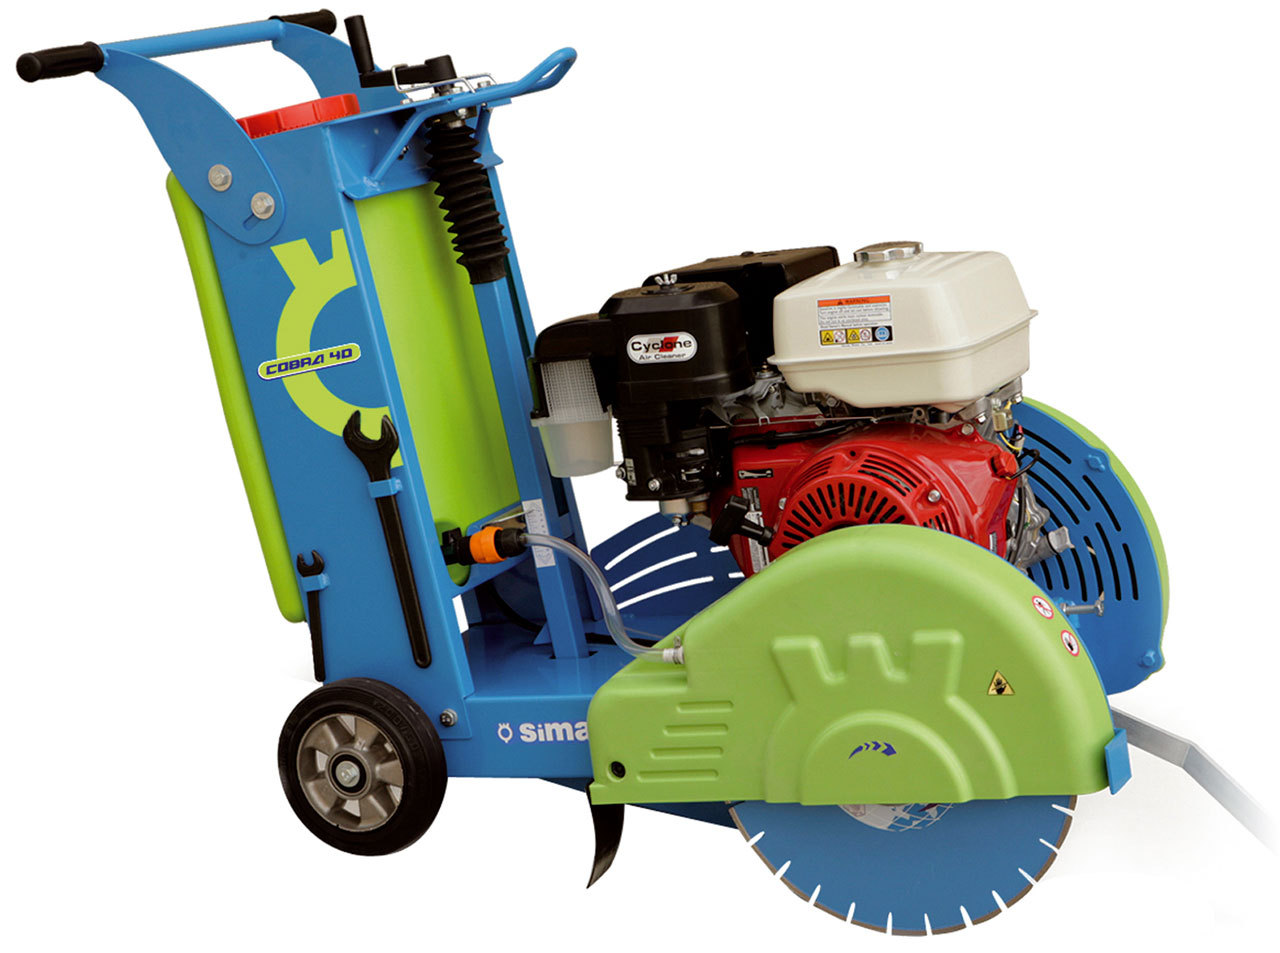 SIMA Cobra 45 Road Saw 18″ 450mm Honda Petrol